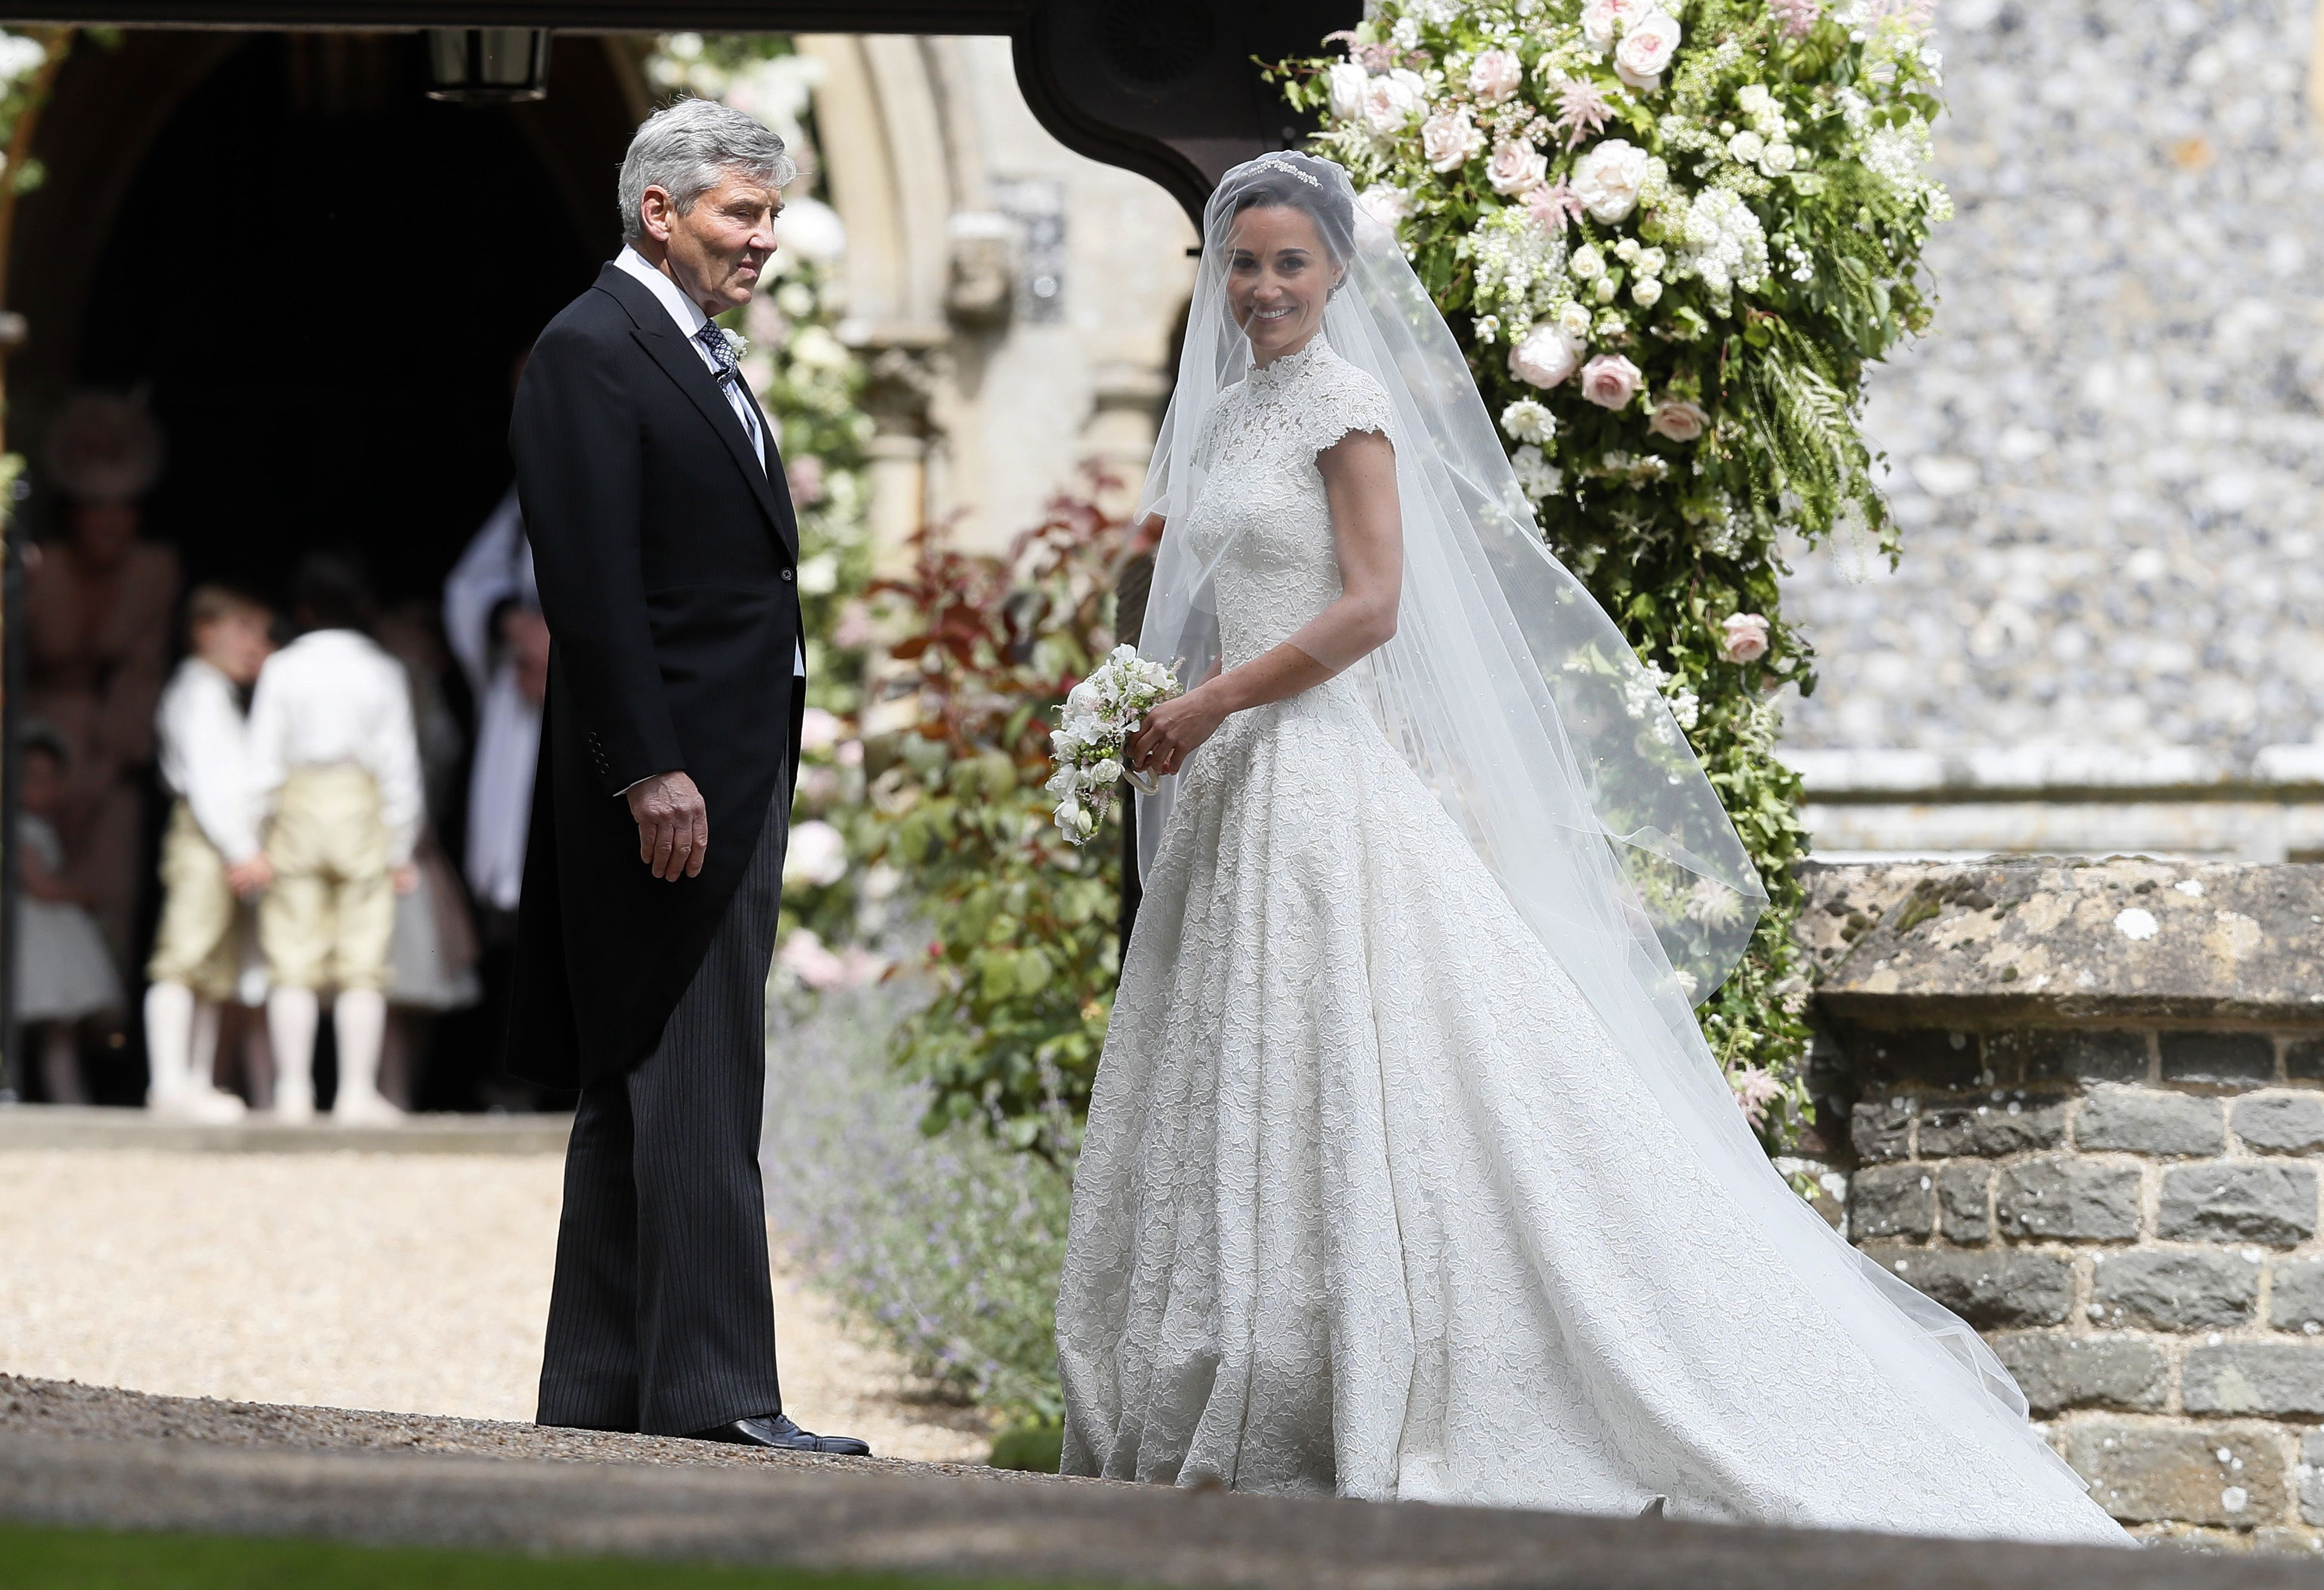 Pippa Middleton wedding Pippa Middleton (in Giles Deacon) arrives with her father Michael Middleton